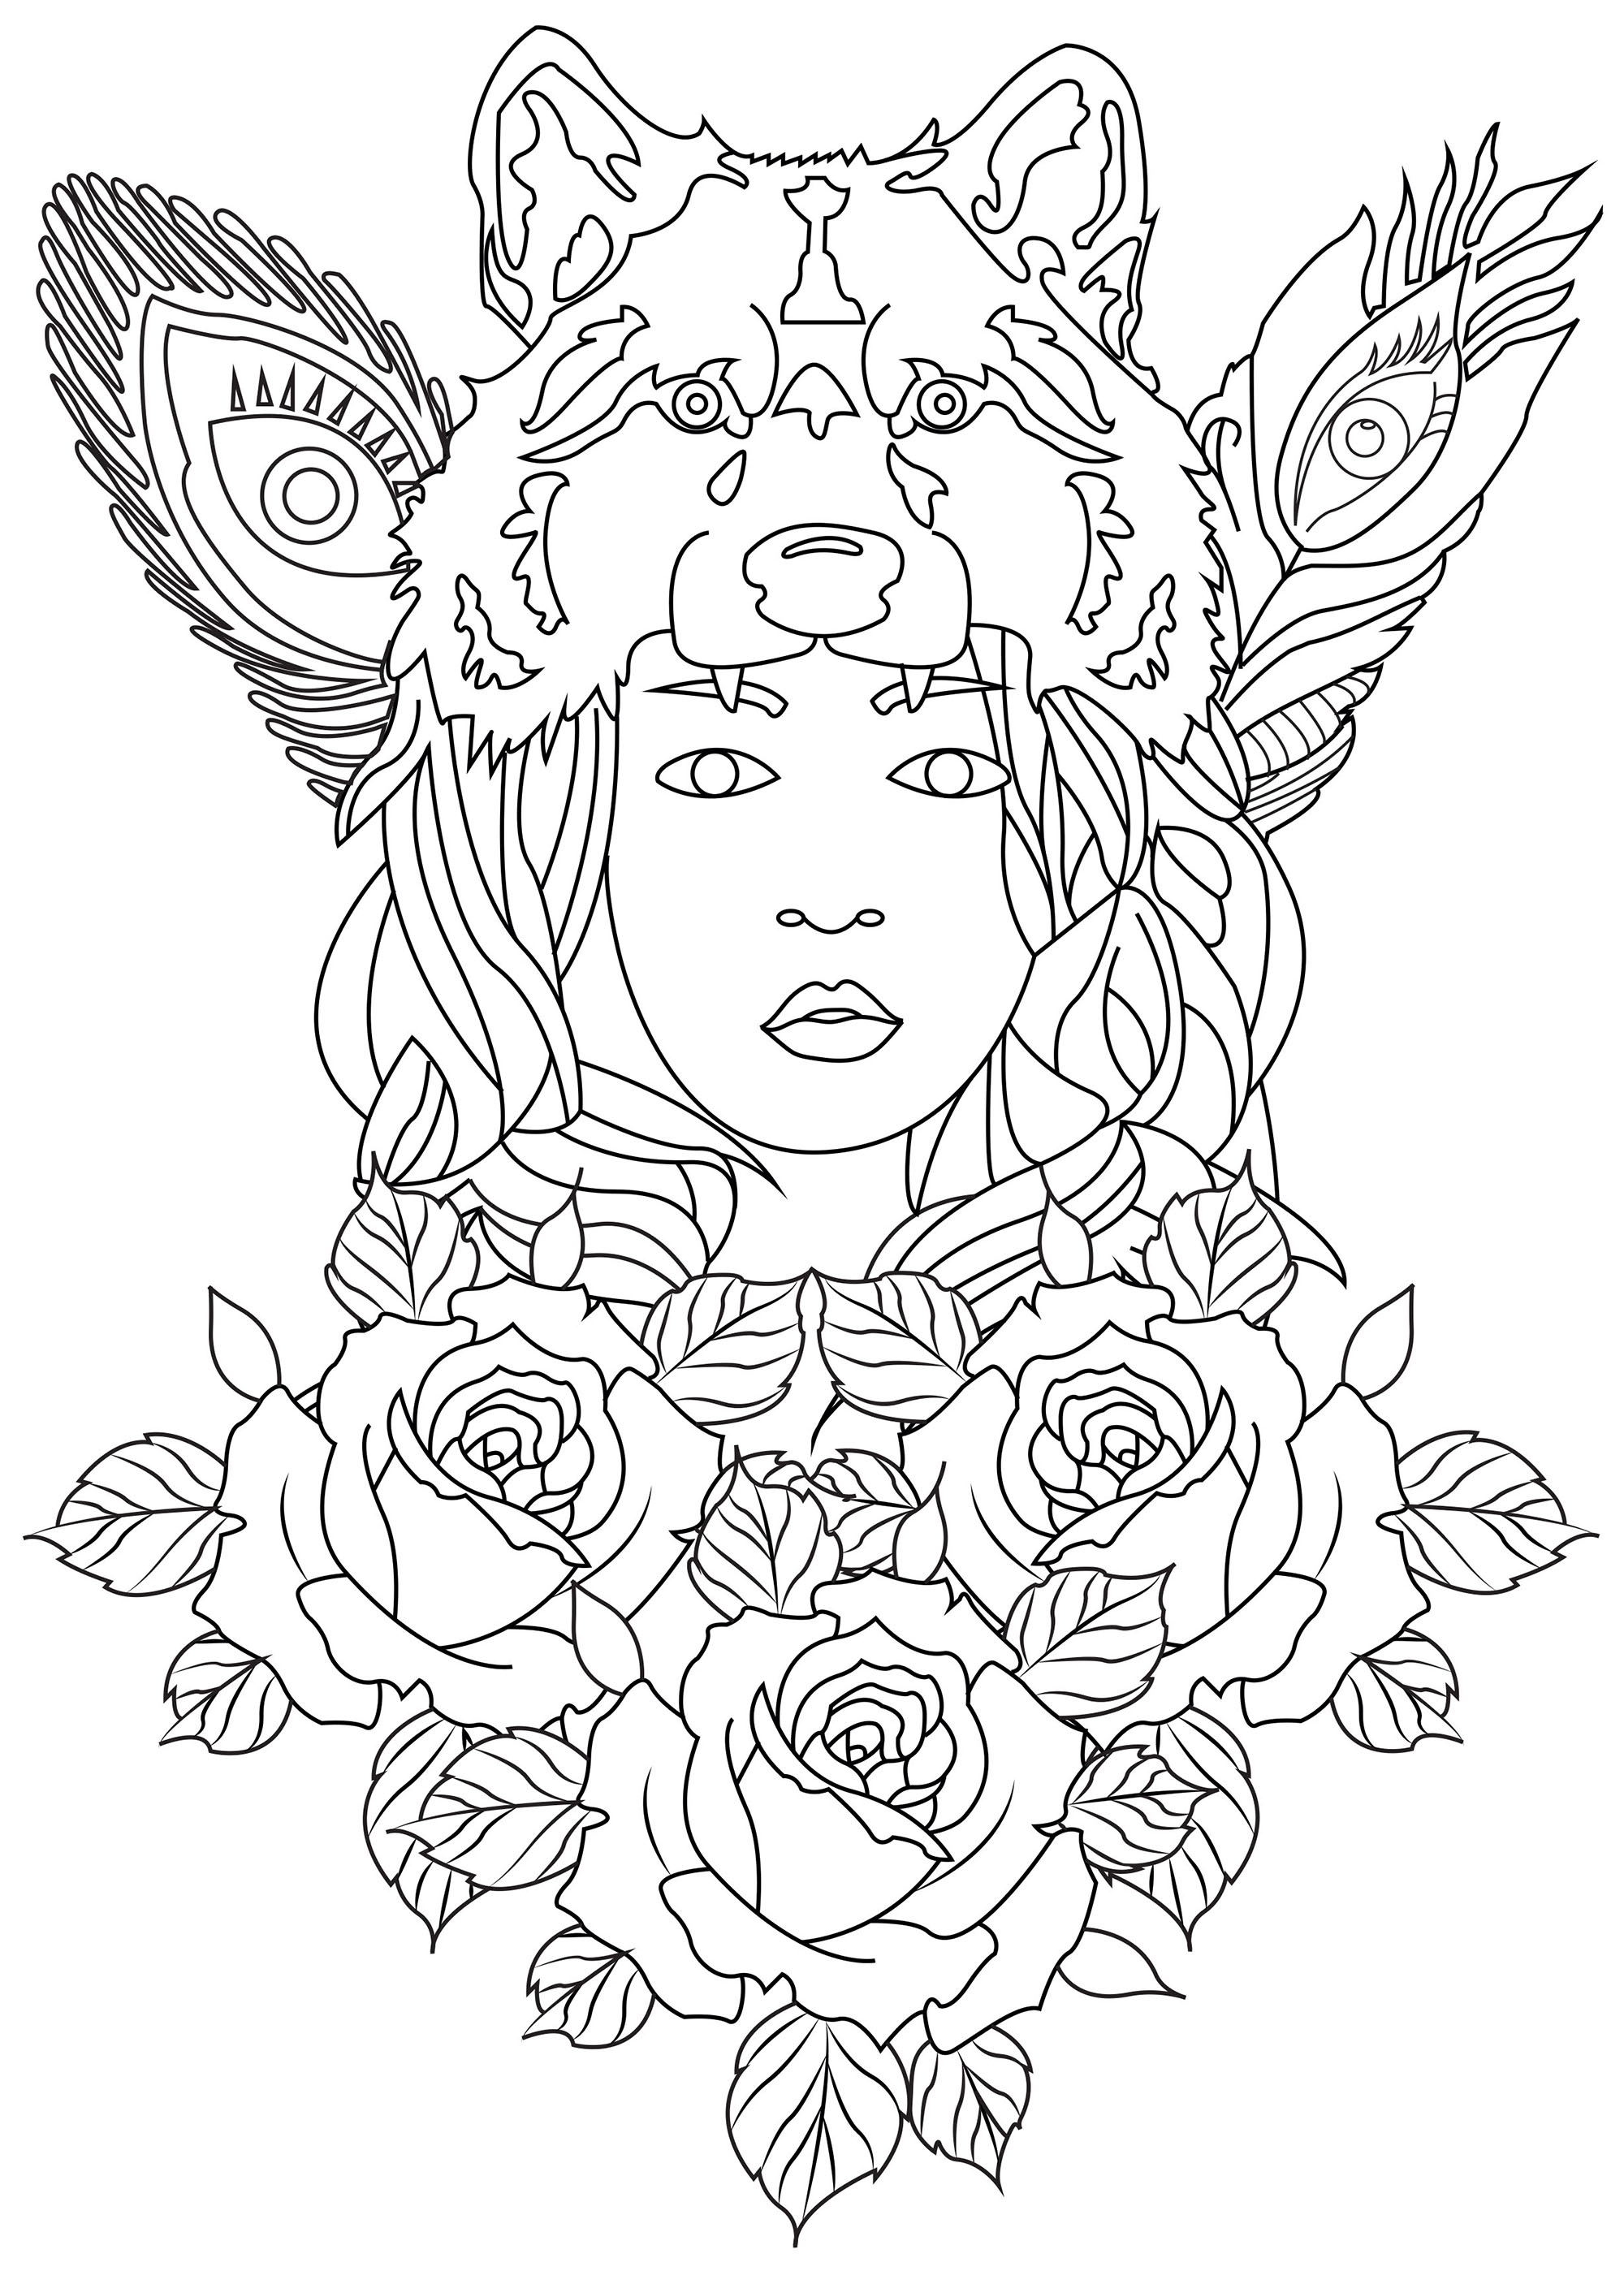 Color this 'Wolf Woman' and all the roses and feathers that surround her